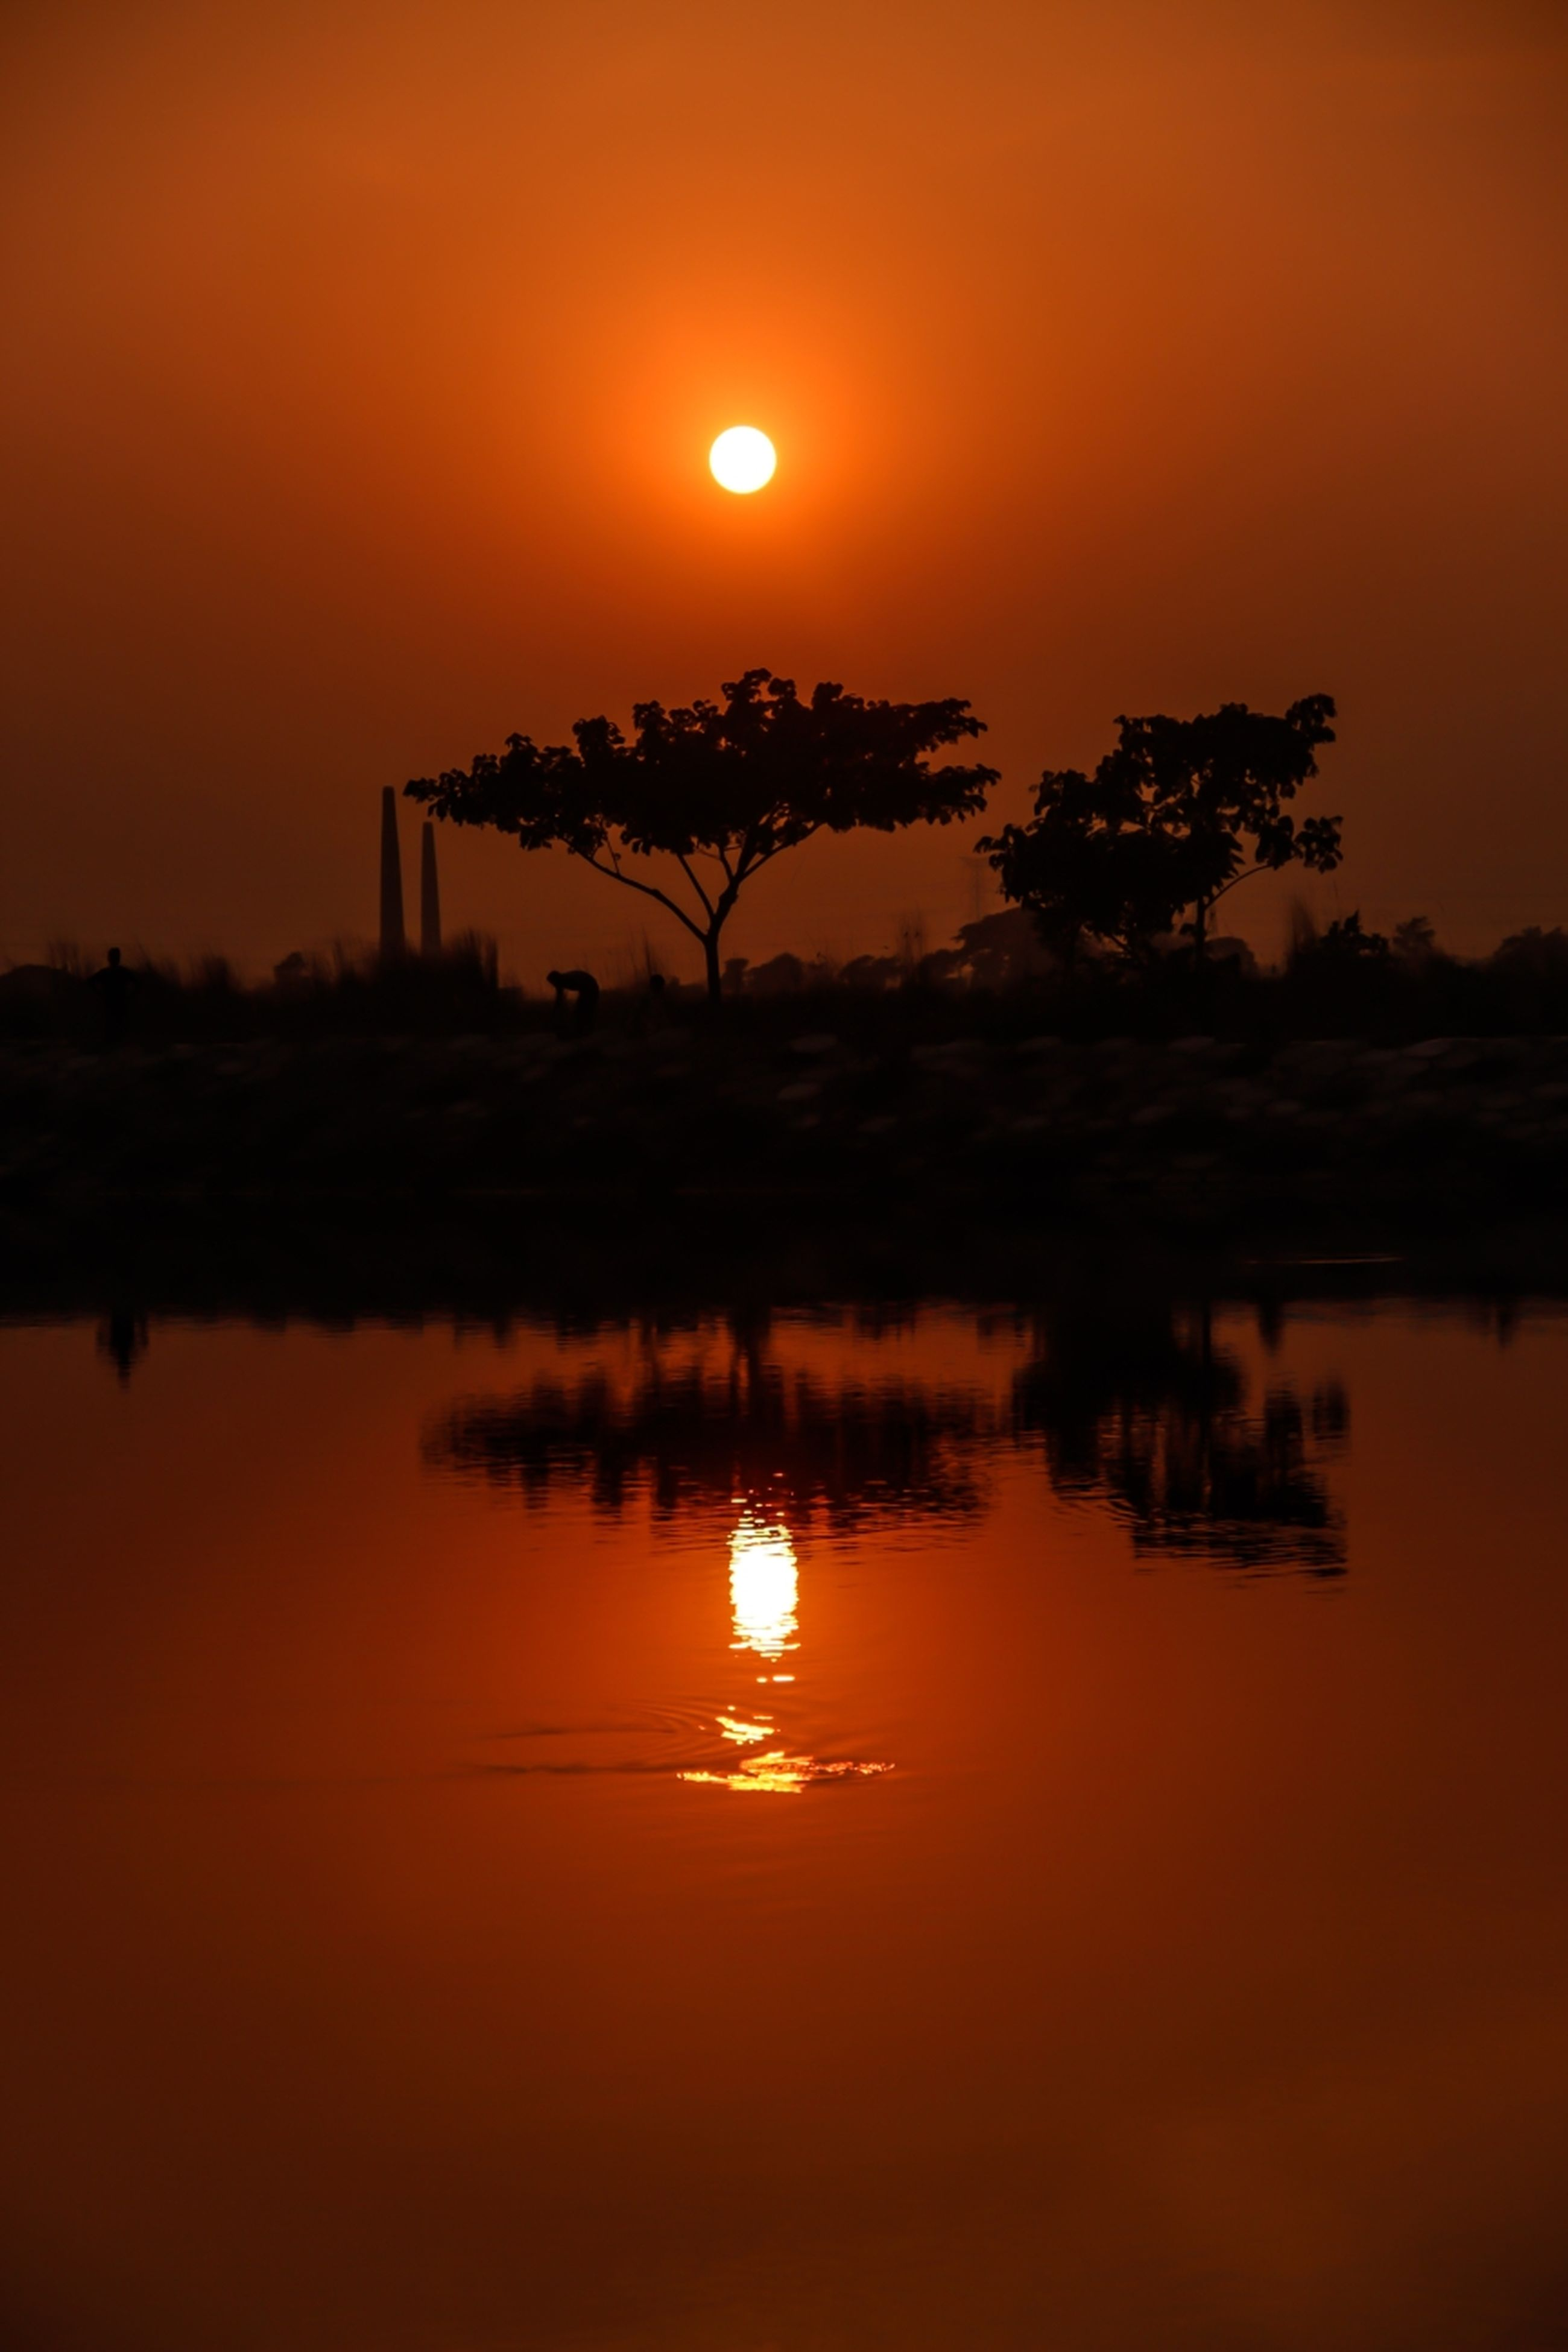 sunset, reflection, sun, water, orange color, scenics, tranquil scene, silhouette, tranquility, beauty in nature, lake, waterfront, idyllic, sky, nature, standing water, tree, built structure, glowing, river